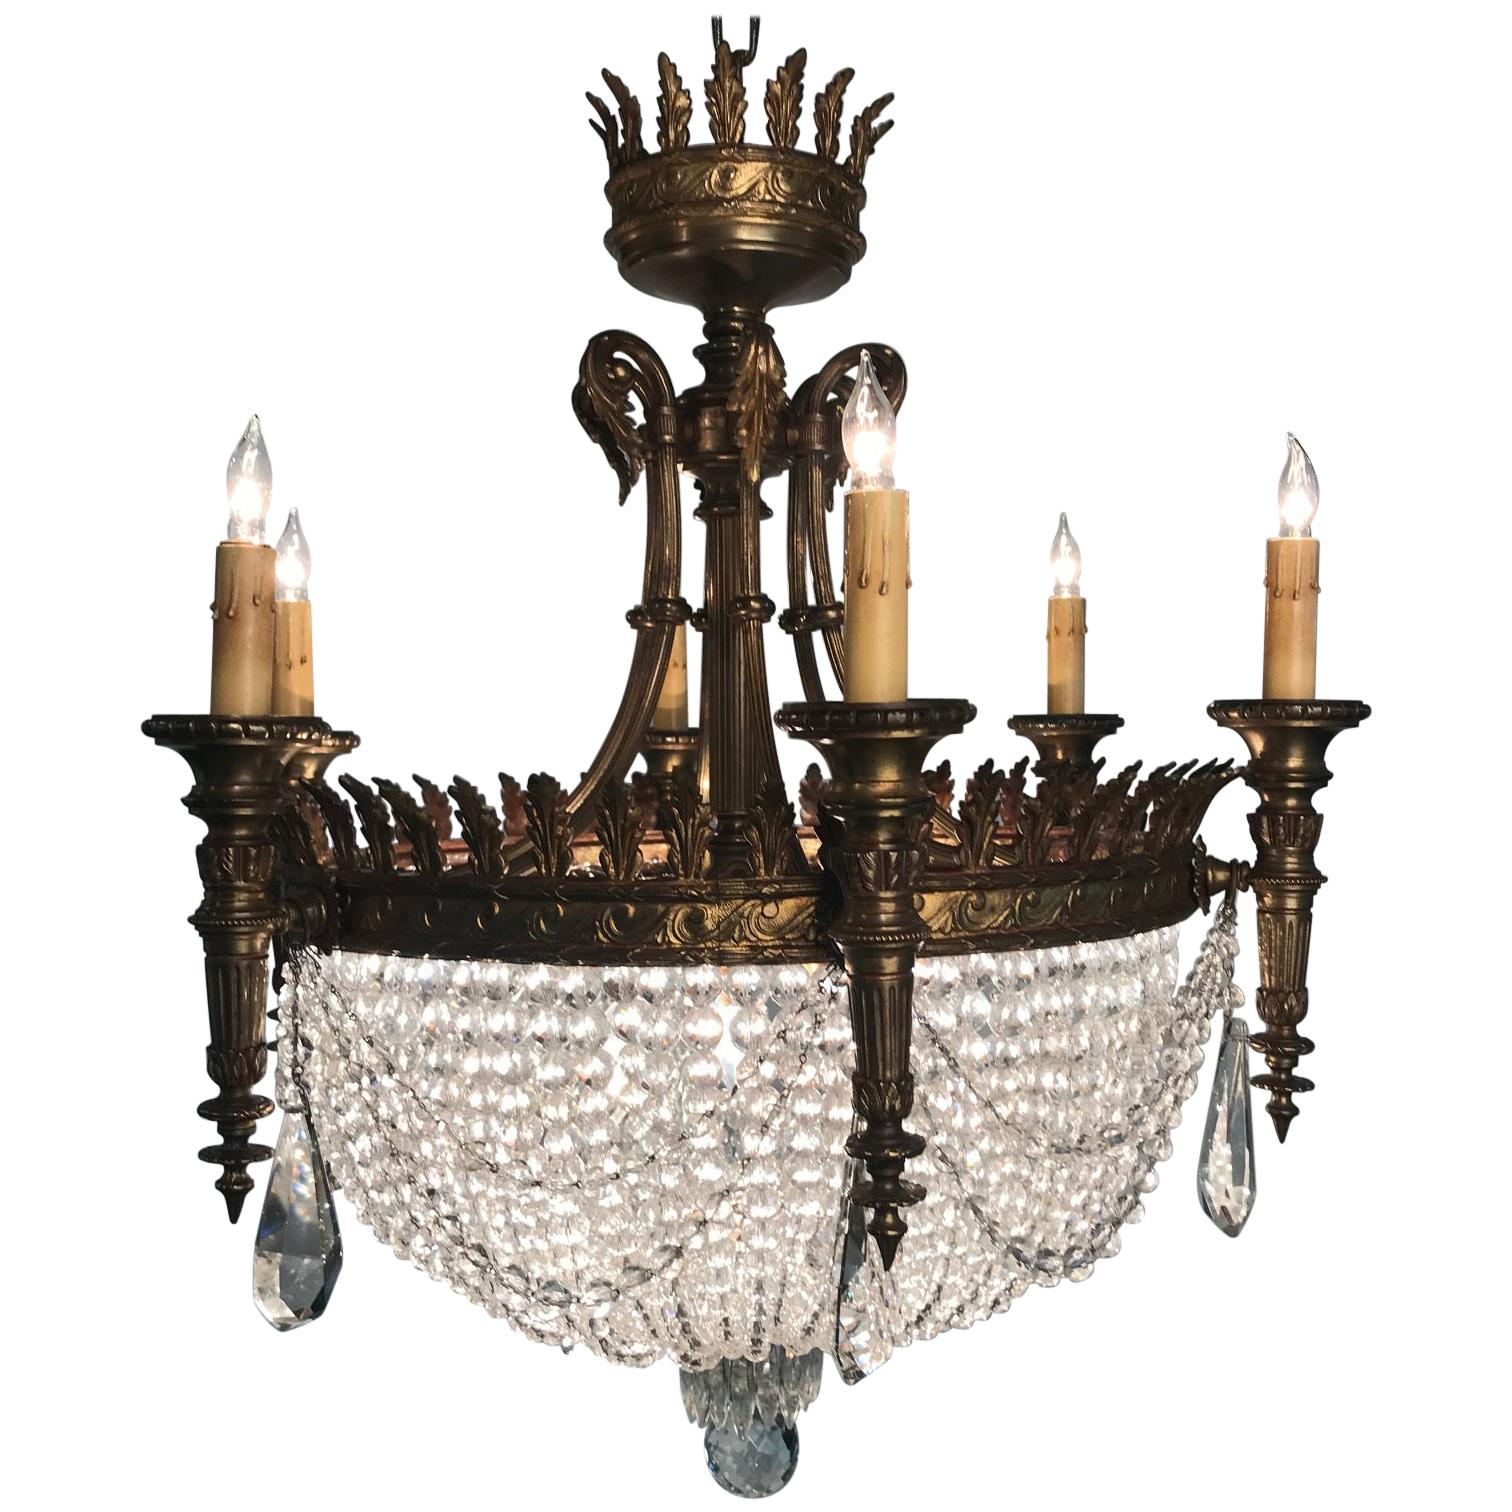 Louis XVI Style Six-Light Basket Chandelier